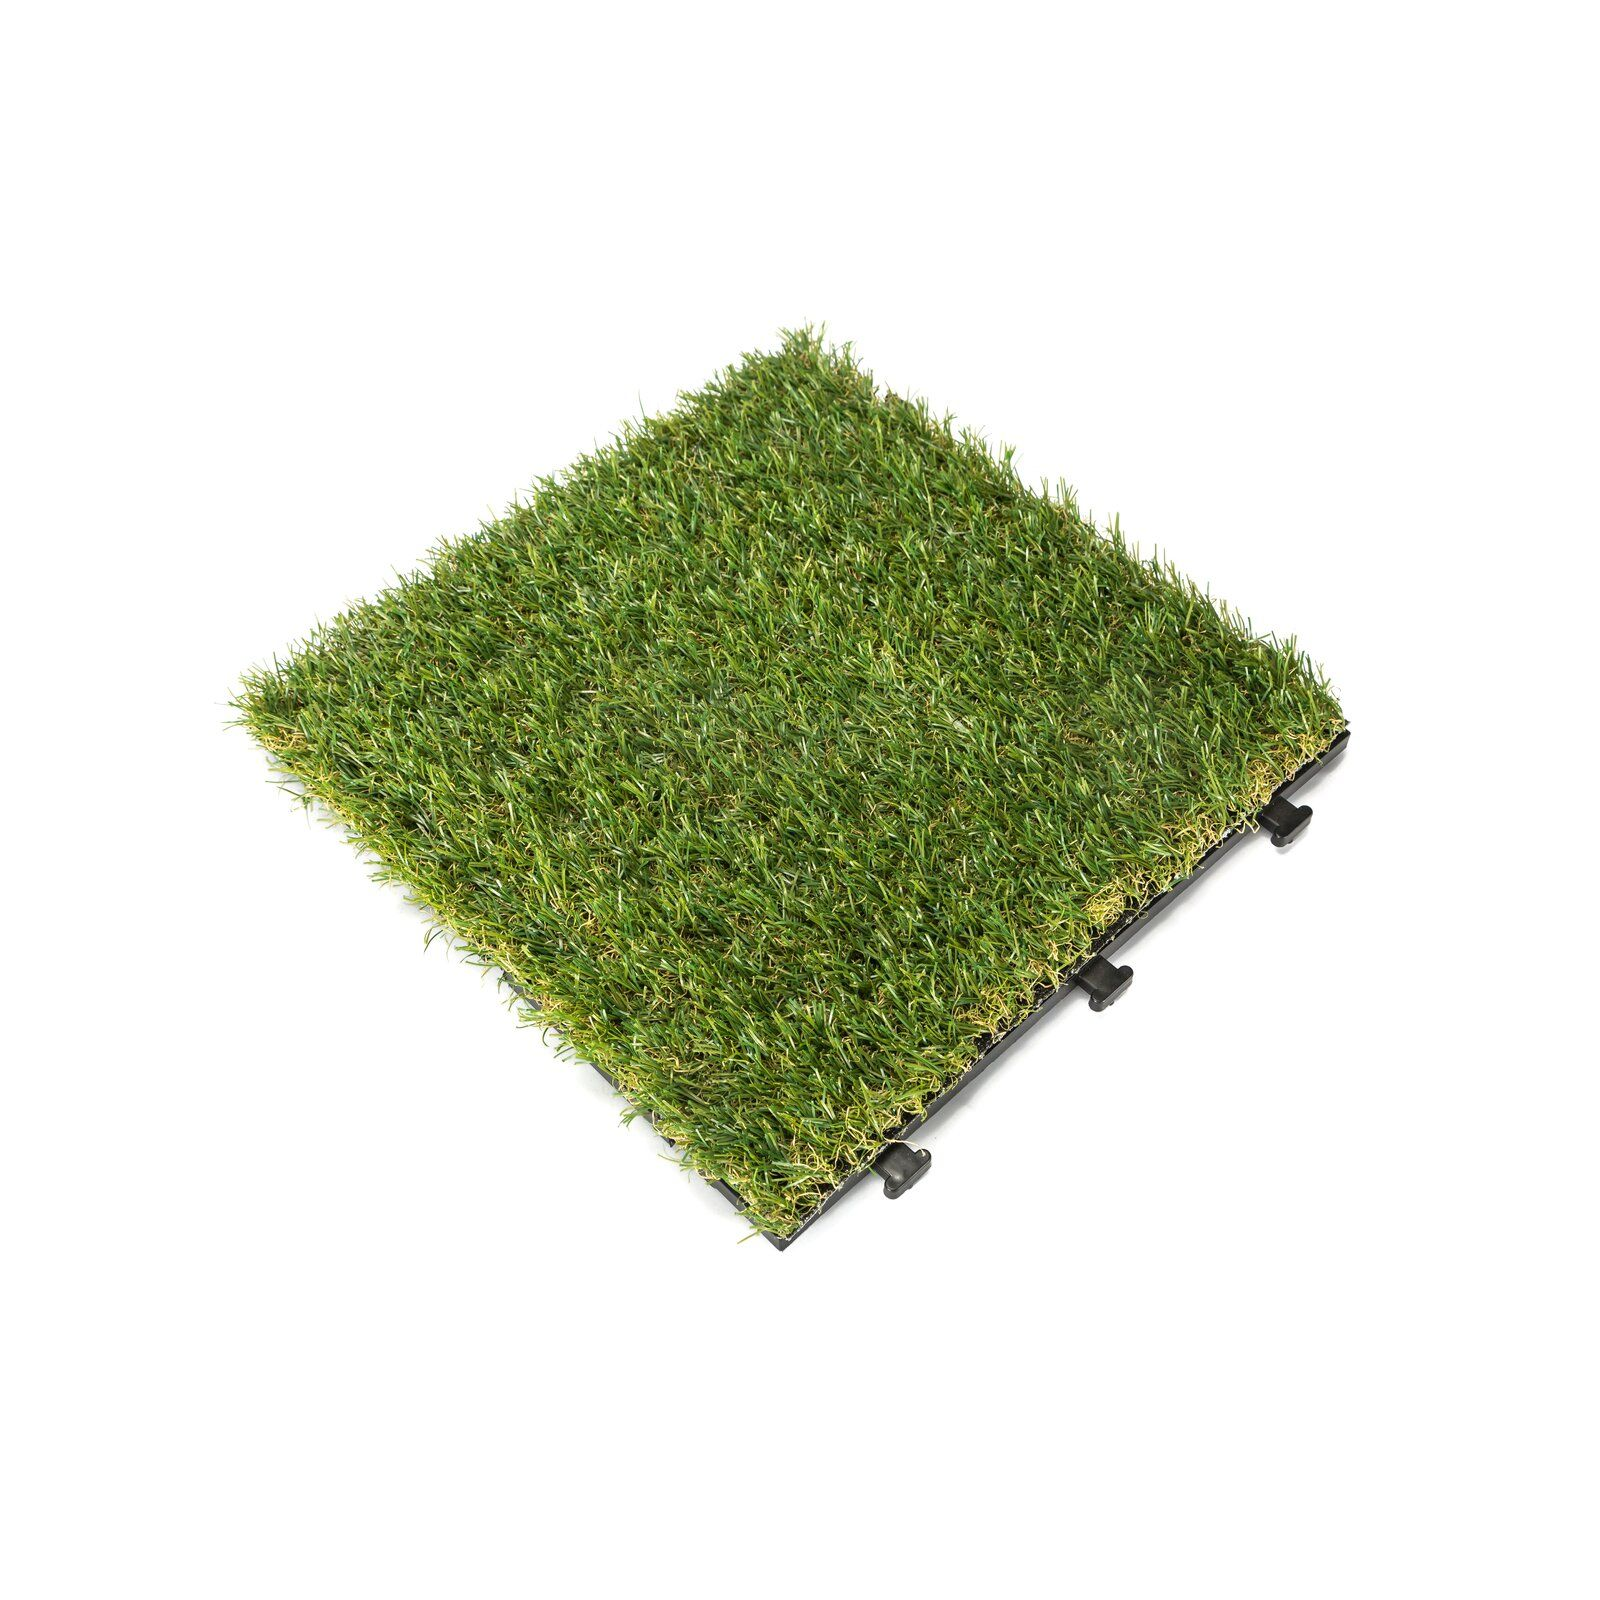 12 X 12 Plastic Interlocking Deck Tile In Green Deck Tile Diy Artificial Turf Artificial Grass